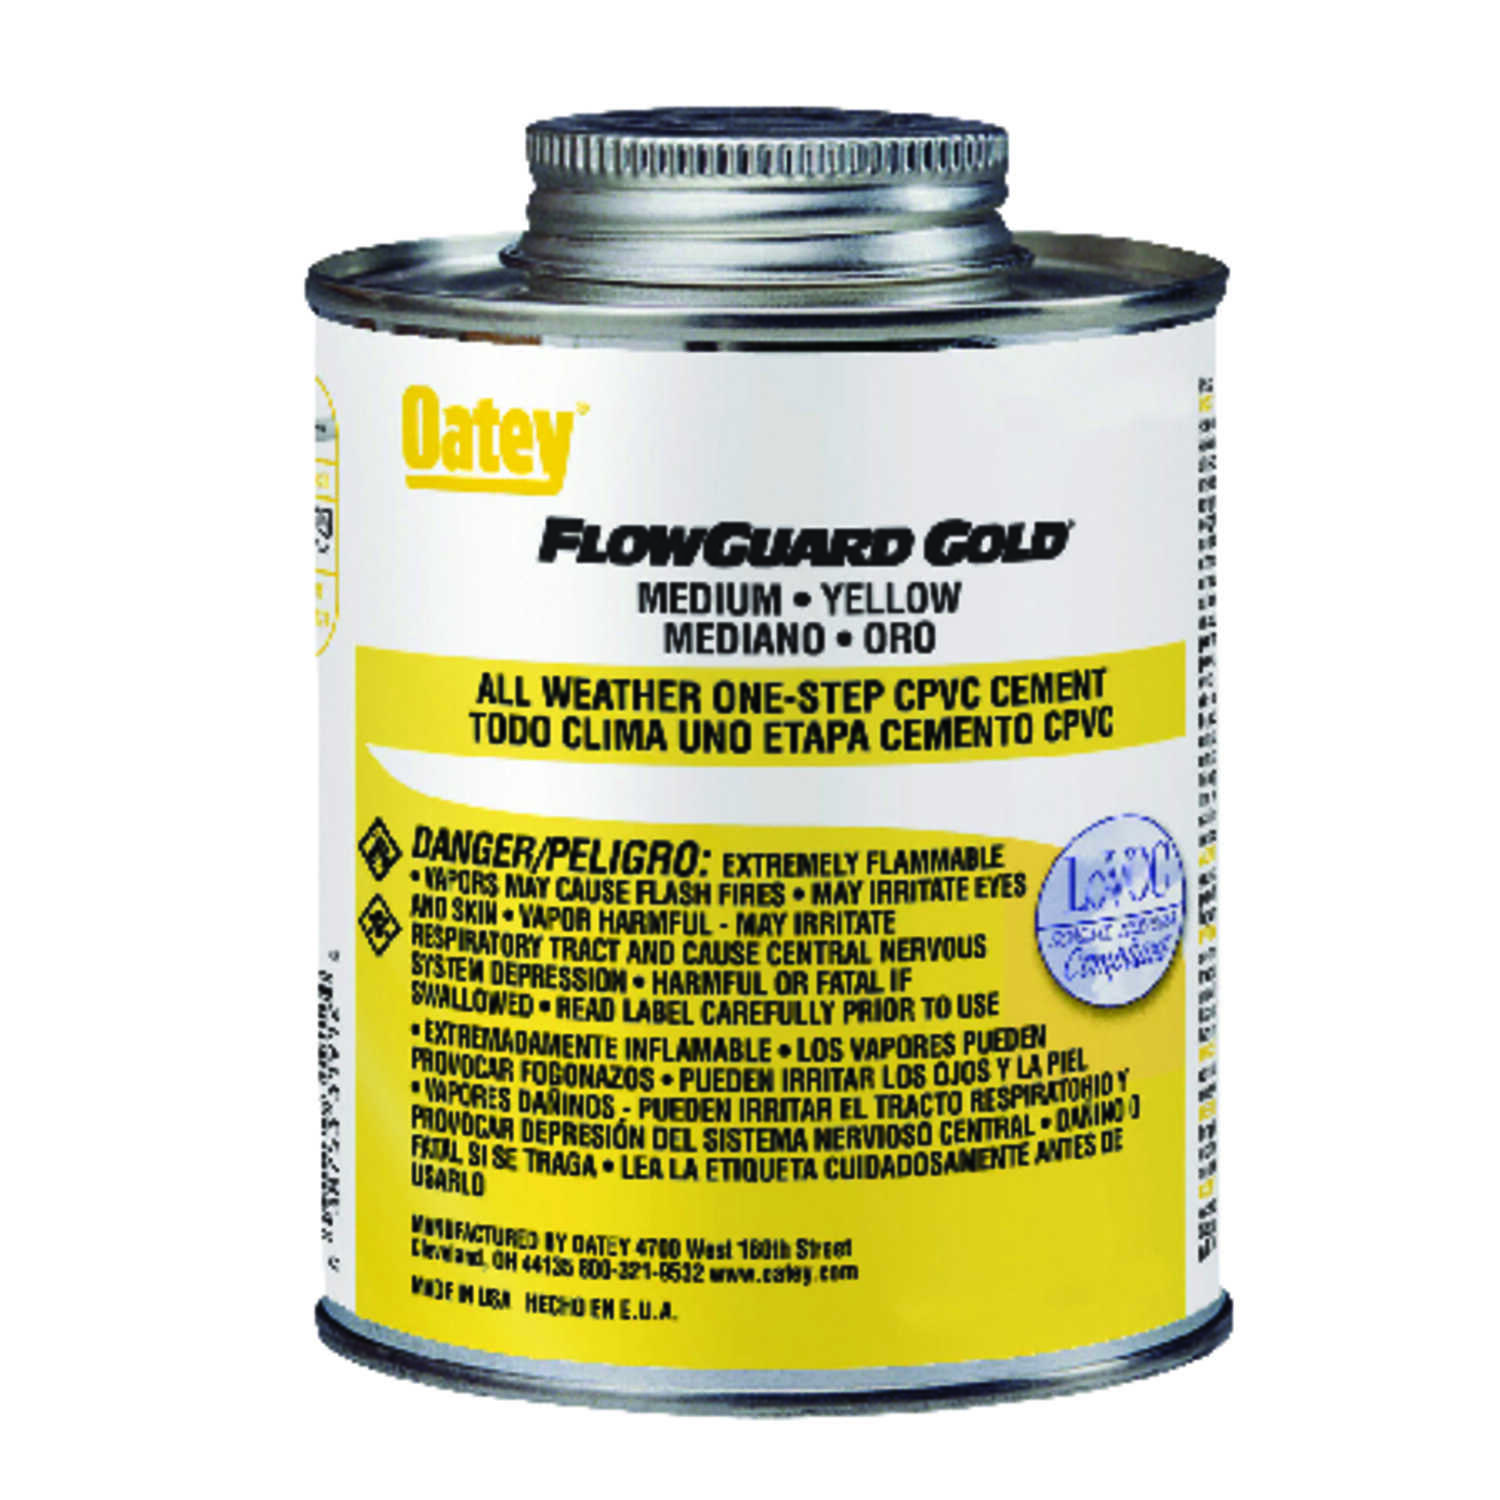 Oatey  FlowGuard Gold All Weather One-Step  Yellow  For CPVC 16 oz. Cement